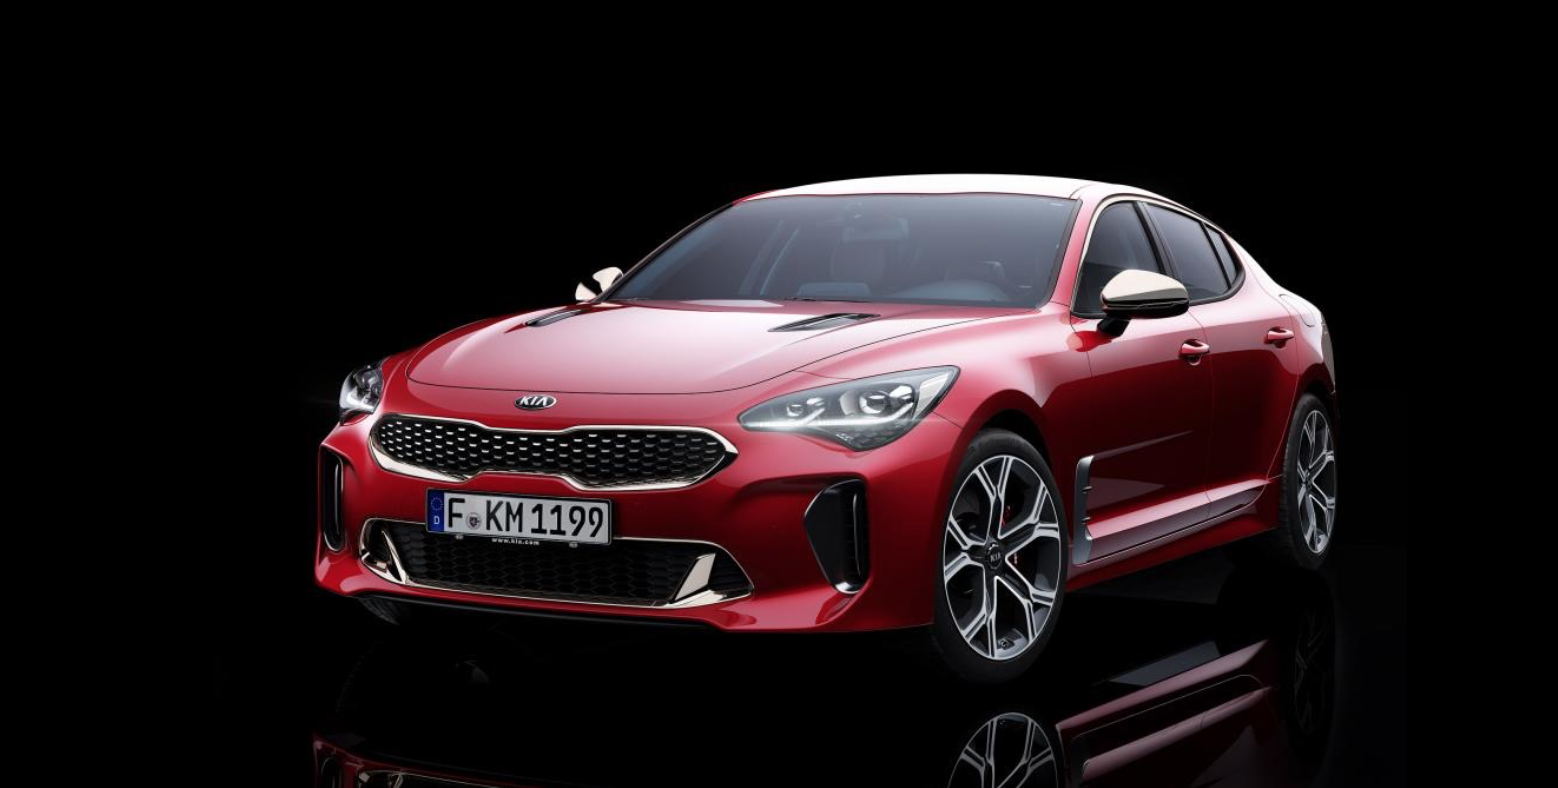 kia stinger gt 2017 la berlina coreana con 365 cv y un aire muy alem n. Black Bedroom Furniture Sets. Home Design Ideas